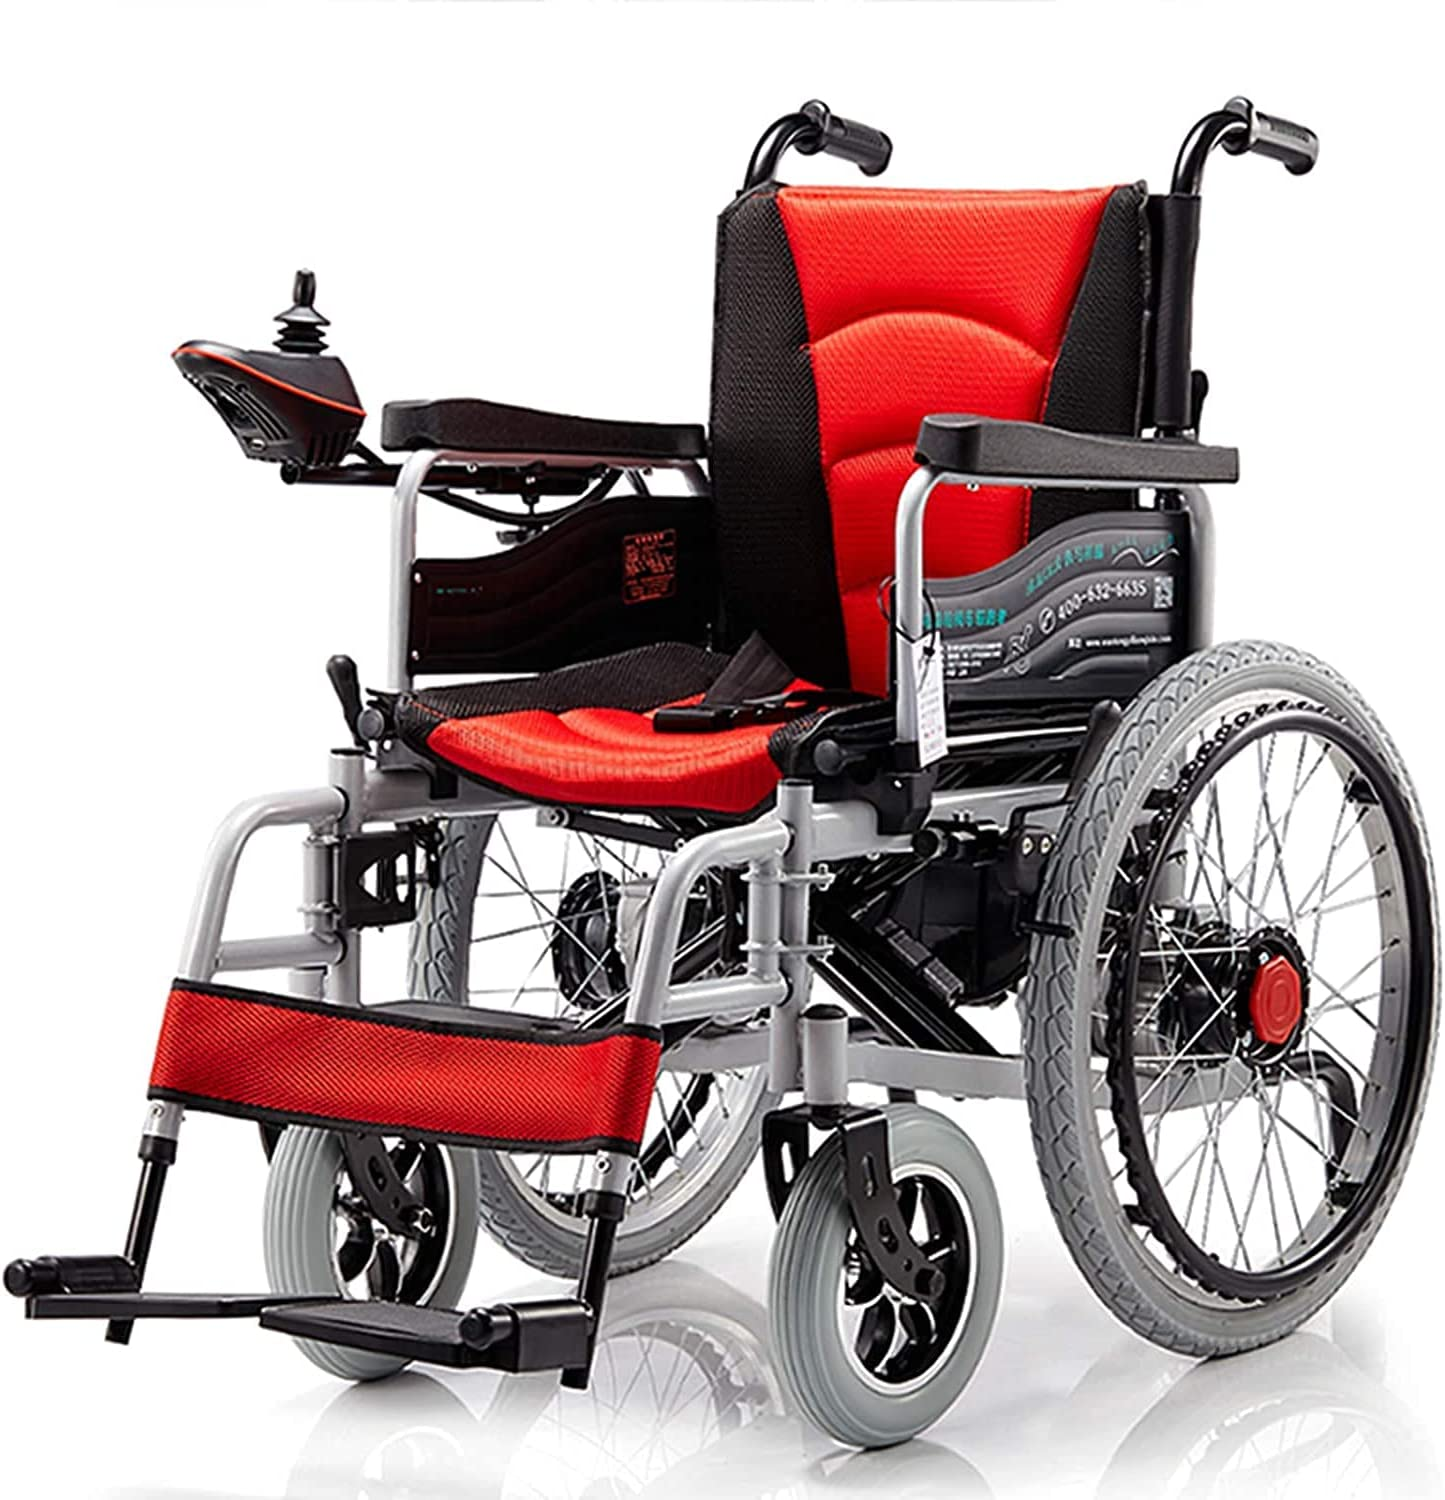 Electric Wheelchair Gorgeous and Flashlight Dual-Purpose Fol Light-Weight Max 48% OFF